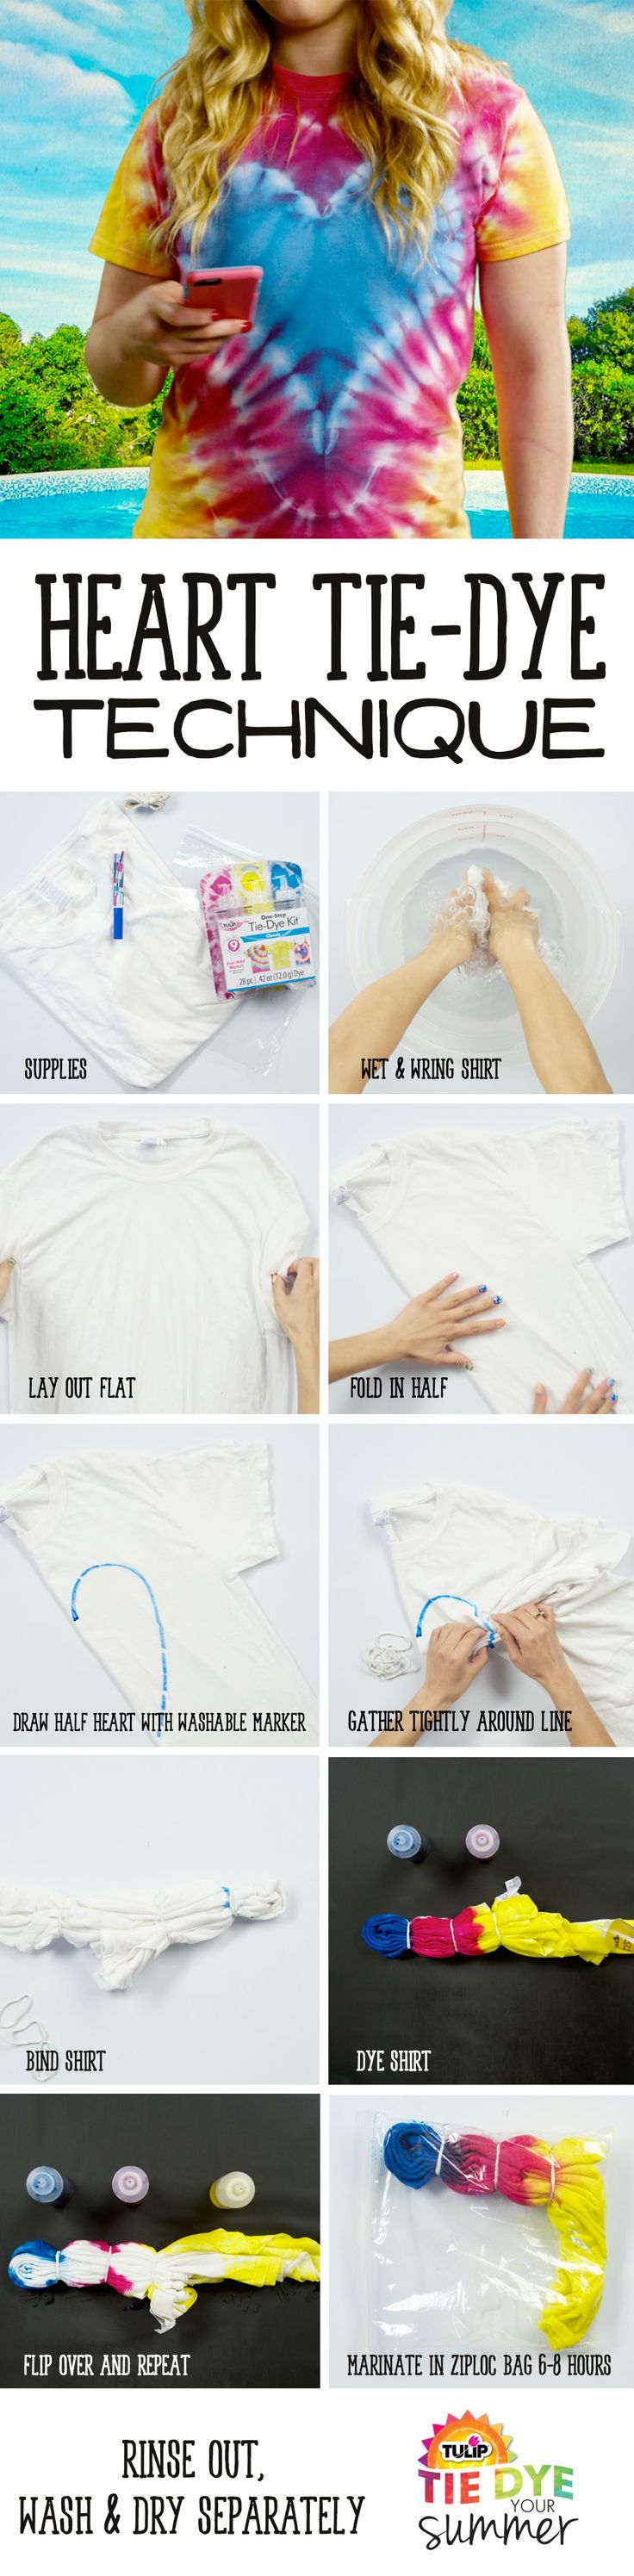 Best 25 tie dye patterns ideas on pinterest how to tie dye tie dye techniques and tye die - Technique tie and dye ...